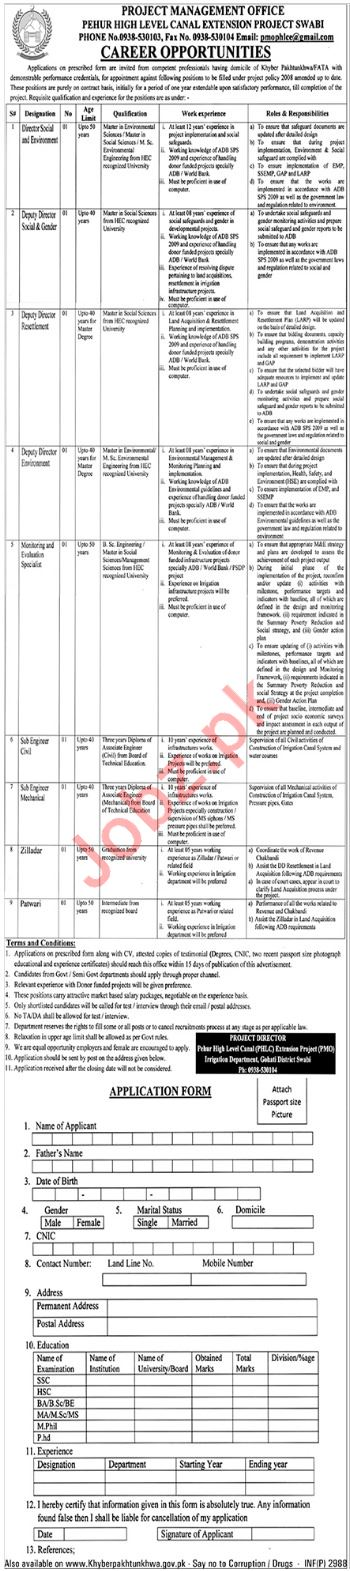 Pehur High Level Canal Extension Project Swat Jobs 2018